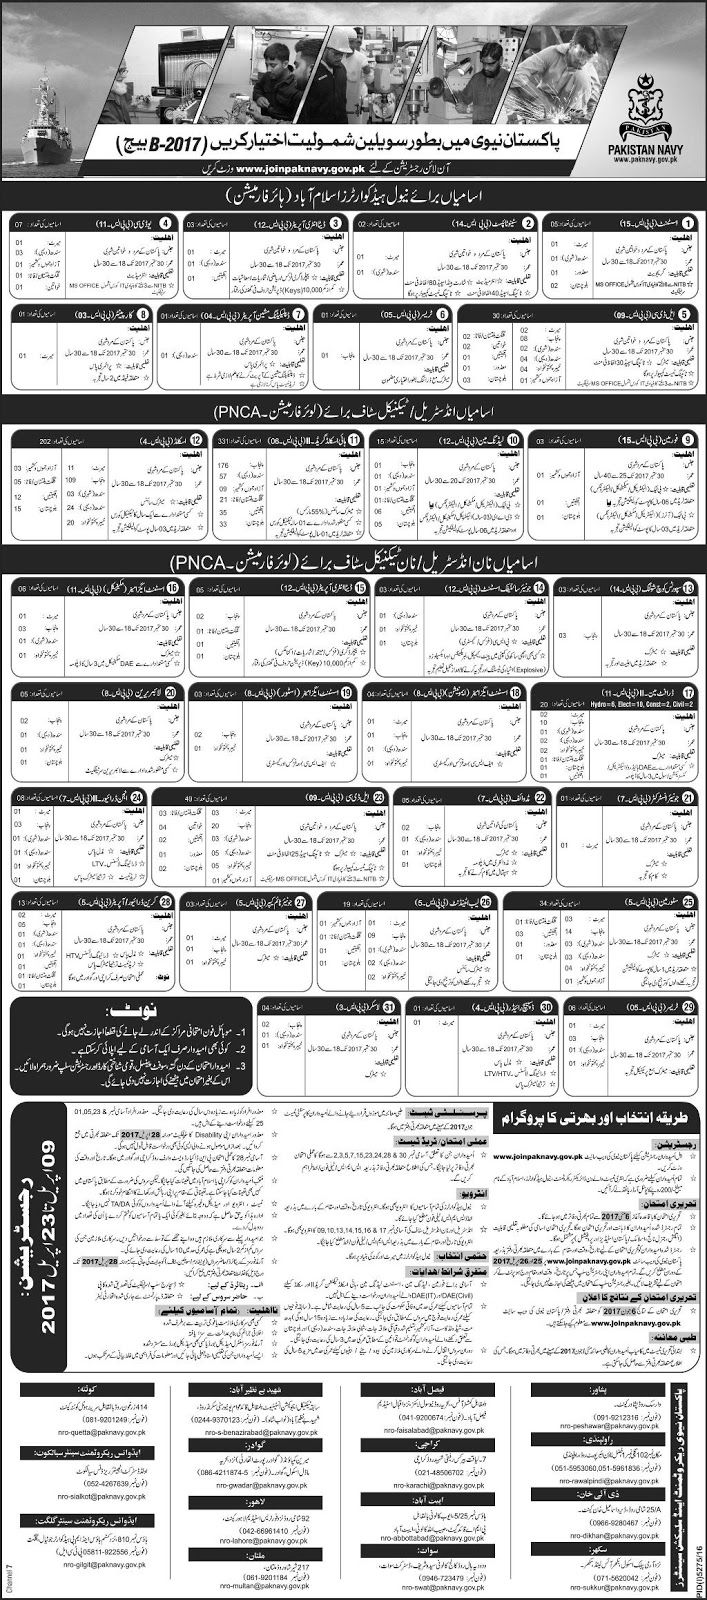 Jobs Title:  Join Pakistan Navy Job As Civilian Staff in Navel Head Quarters Islamabad on different Posts  Jobs Designation:  Assistants Jobs (BPS-14)  Steno typists Jobs (BPS-14)  DEO Jobs Data Entry Operators (BPS-12)  Upper Division Clerks UDC (BPS-09)  Lower Division Clerks UDC (BPS-07)  Duplicating Machine Operators (BPS-04)  Assistant Examiner (Mechanical)  Assistant Examiner  Ammunition  Assistant Examiner (Store)  Car Painter (BPS-04)  Foreman Jobs (BPS-15)  Leading Man (BPS-12)…